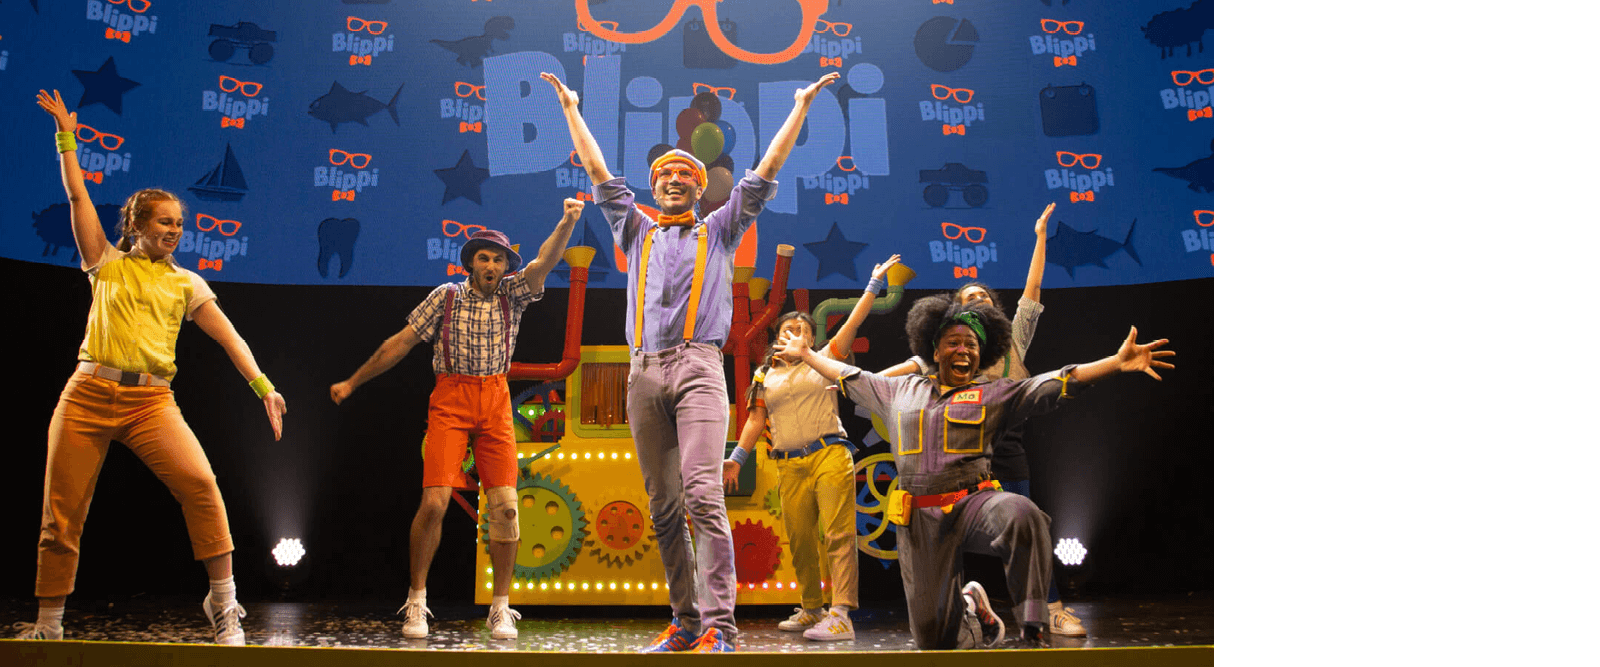 Blippi the Musical Production Photo